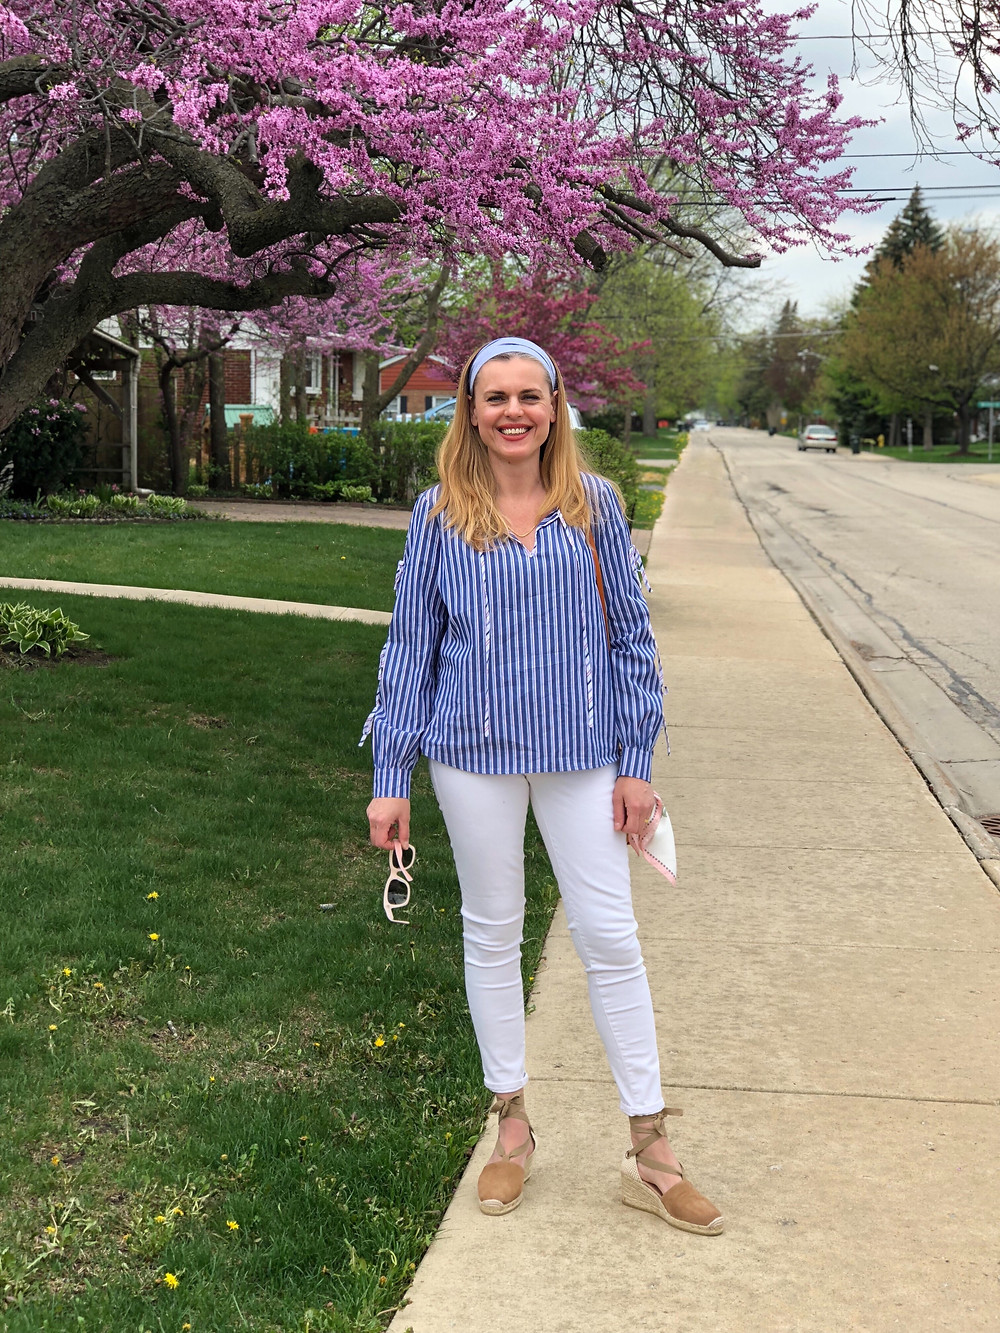 blond woman in blue top and white jeans under a blooming tree